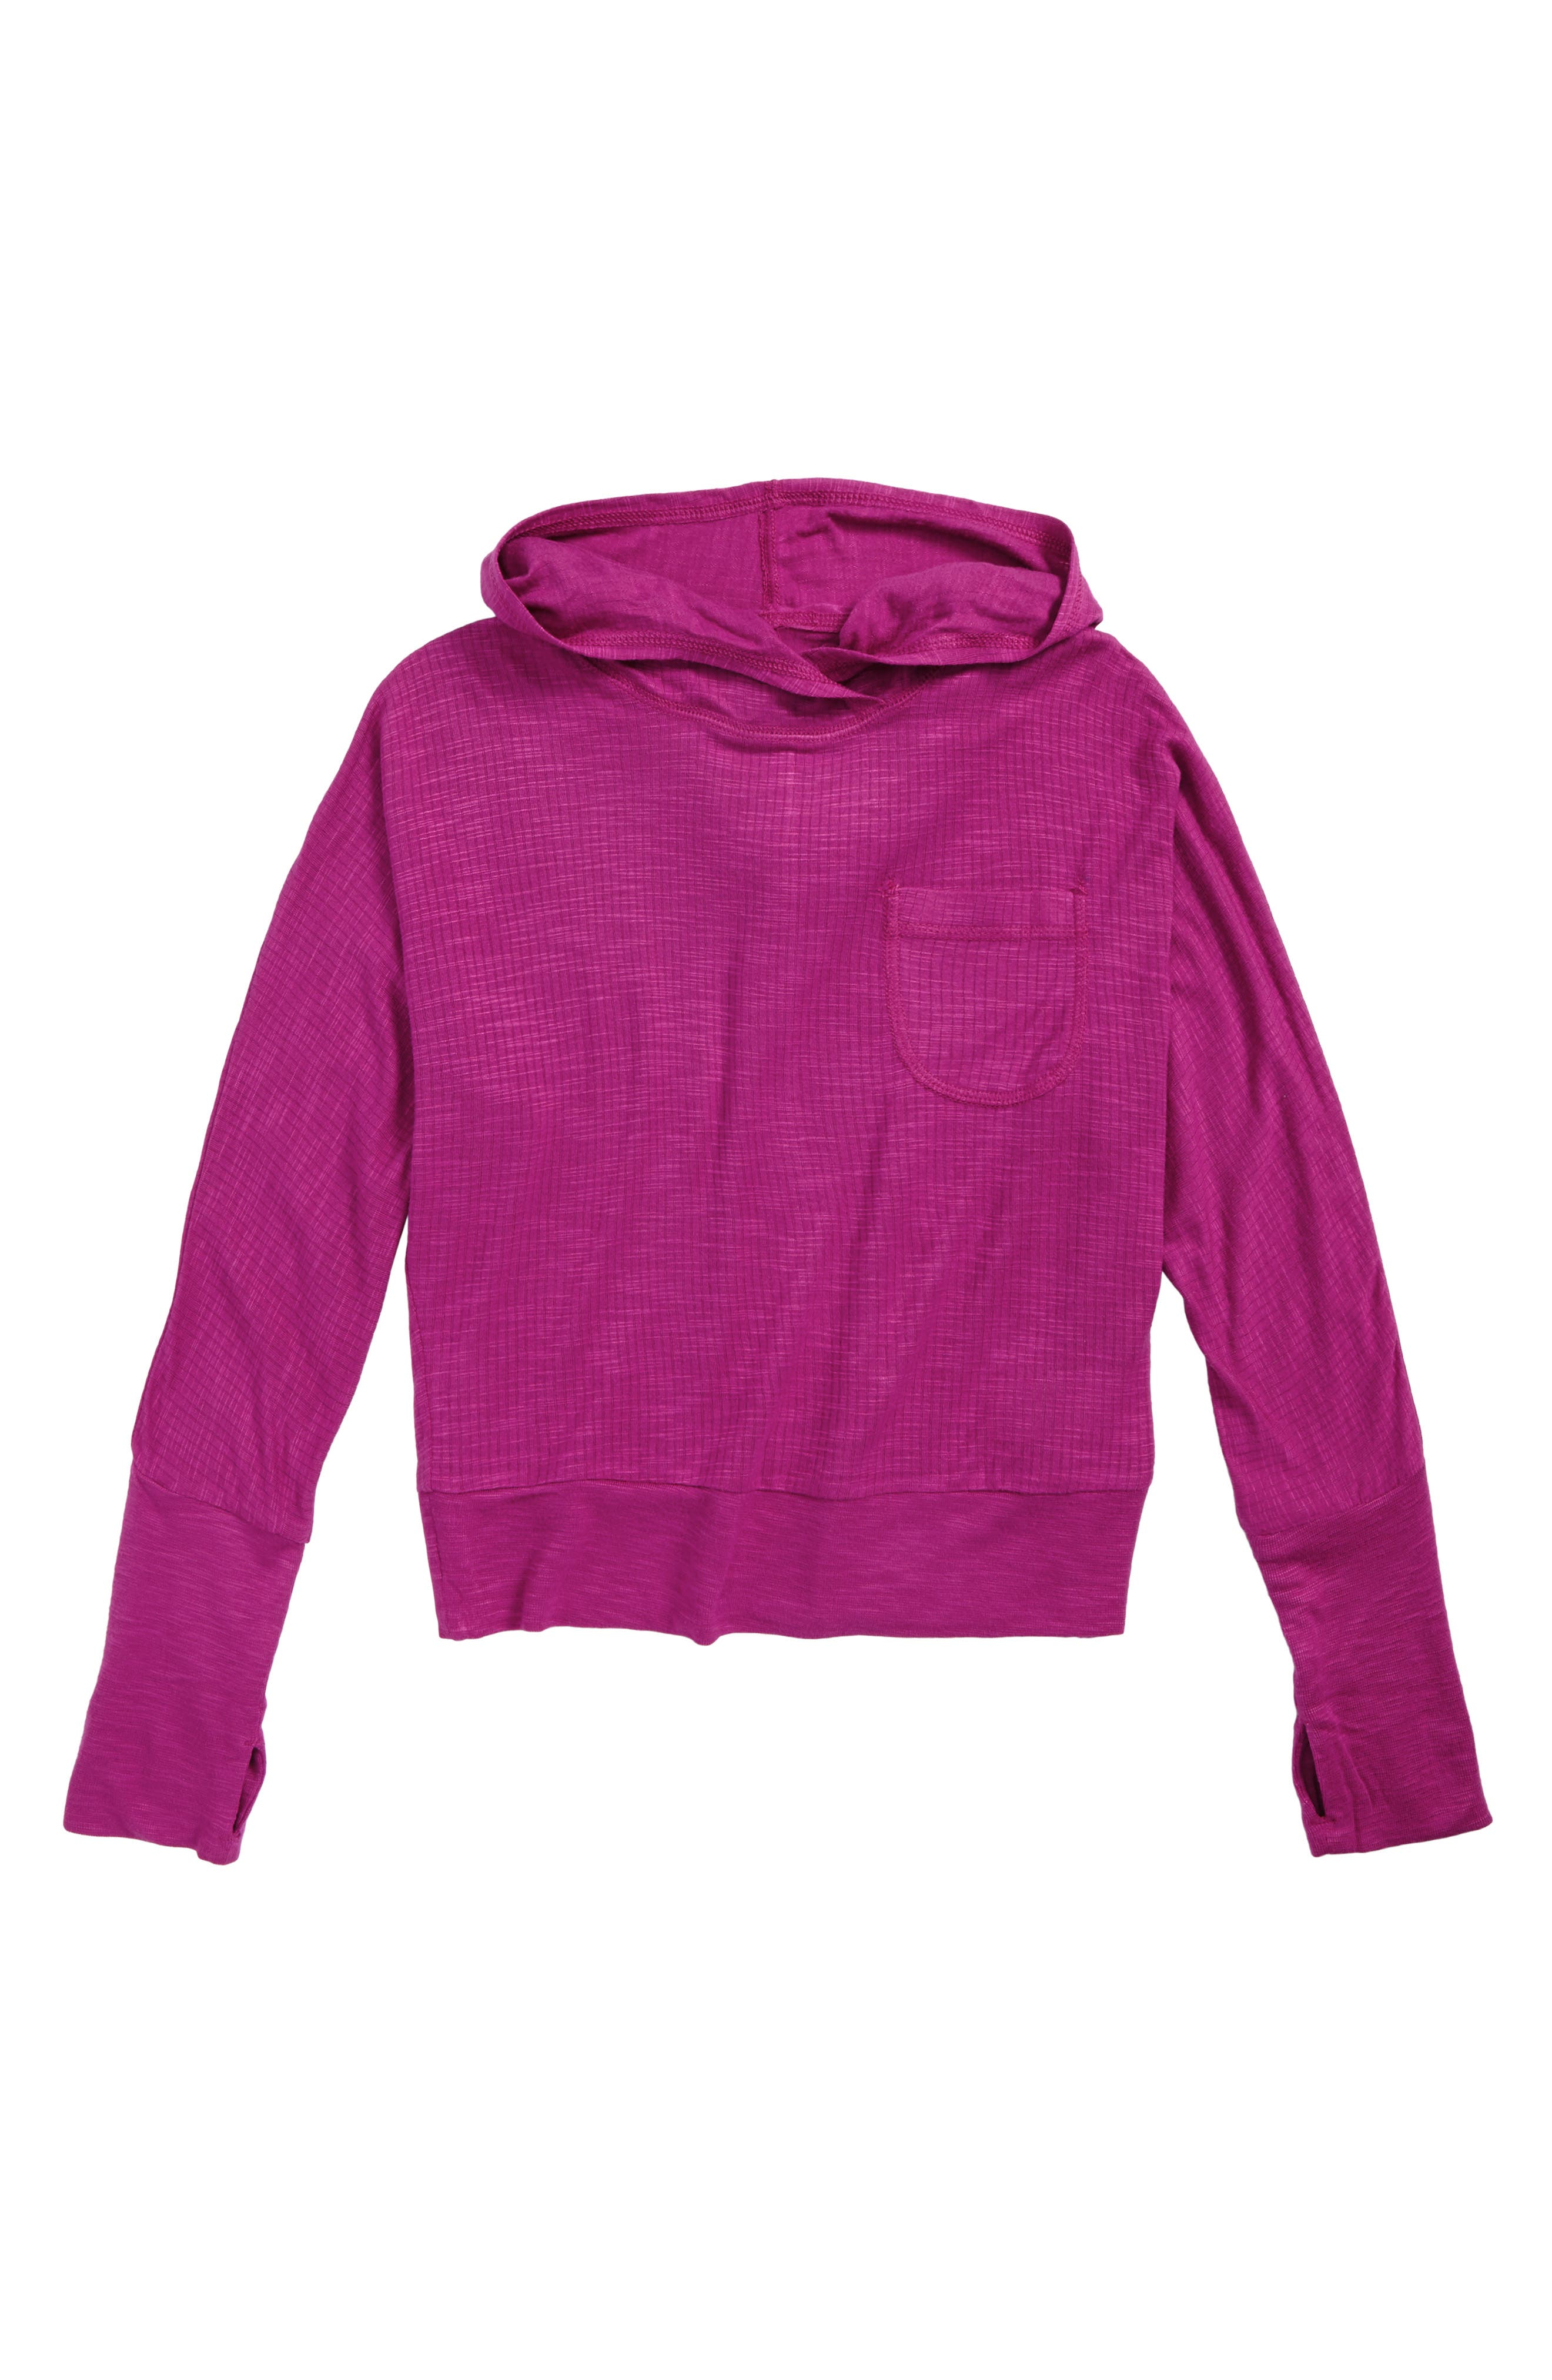 Dolman Hooded Tee,                         Main,                         color, Pink Wild Aster